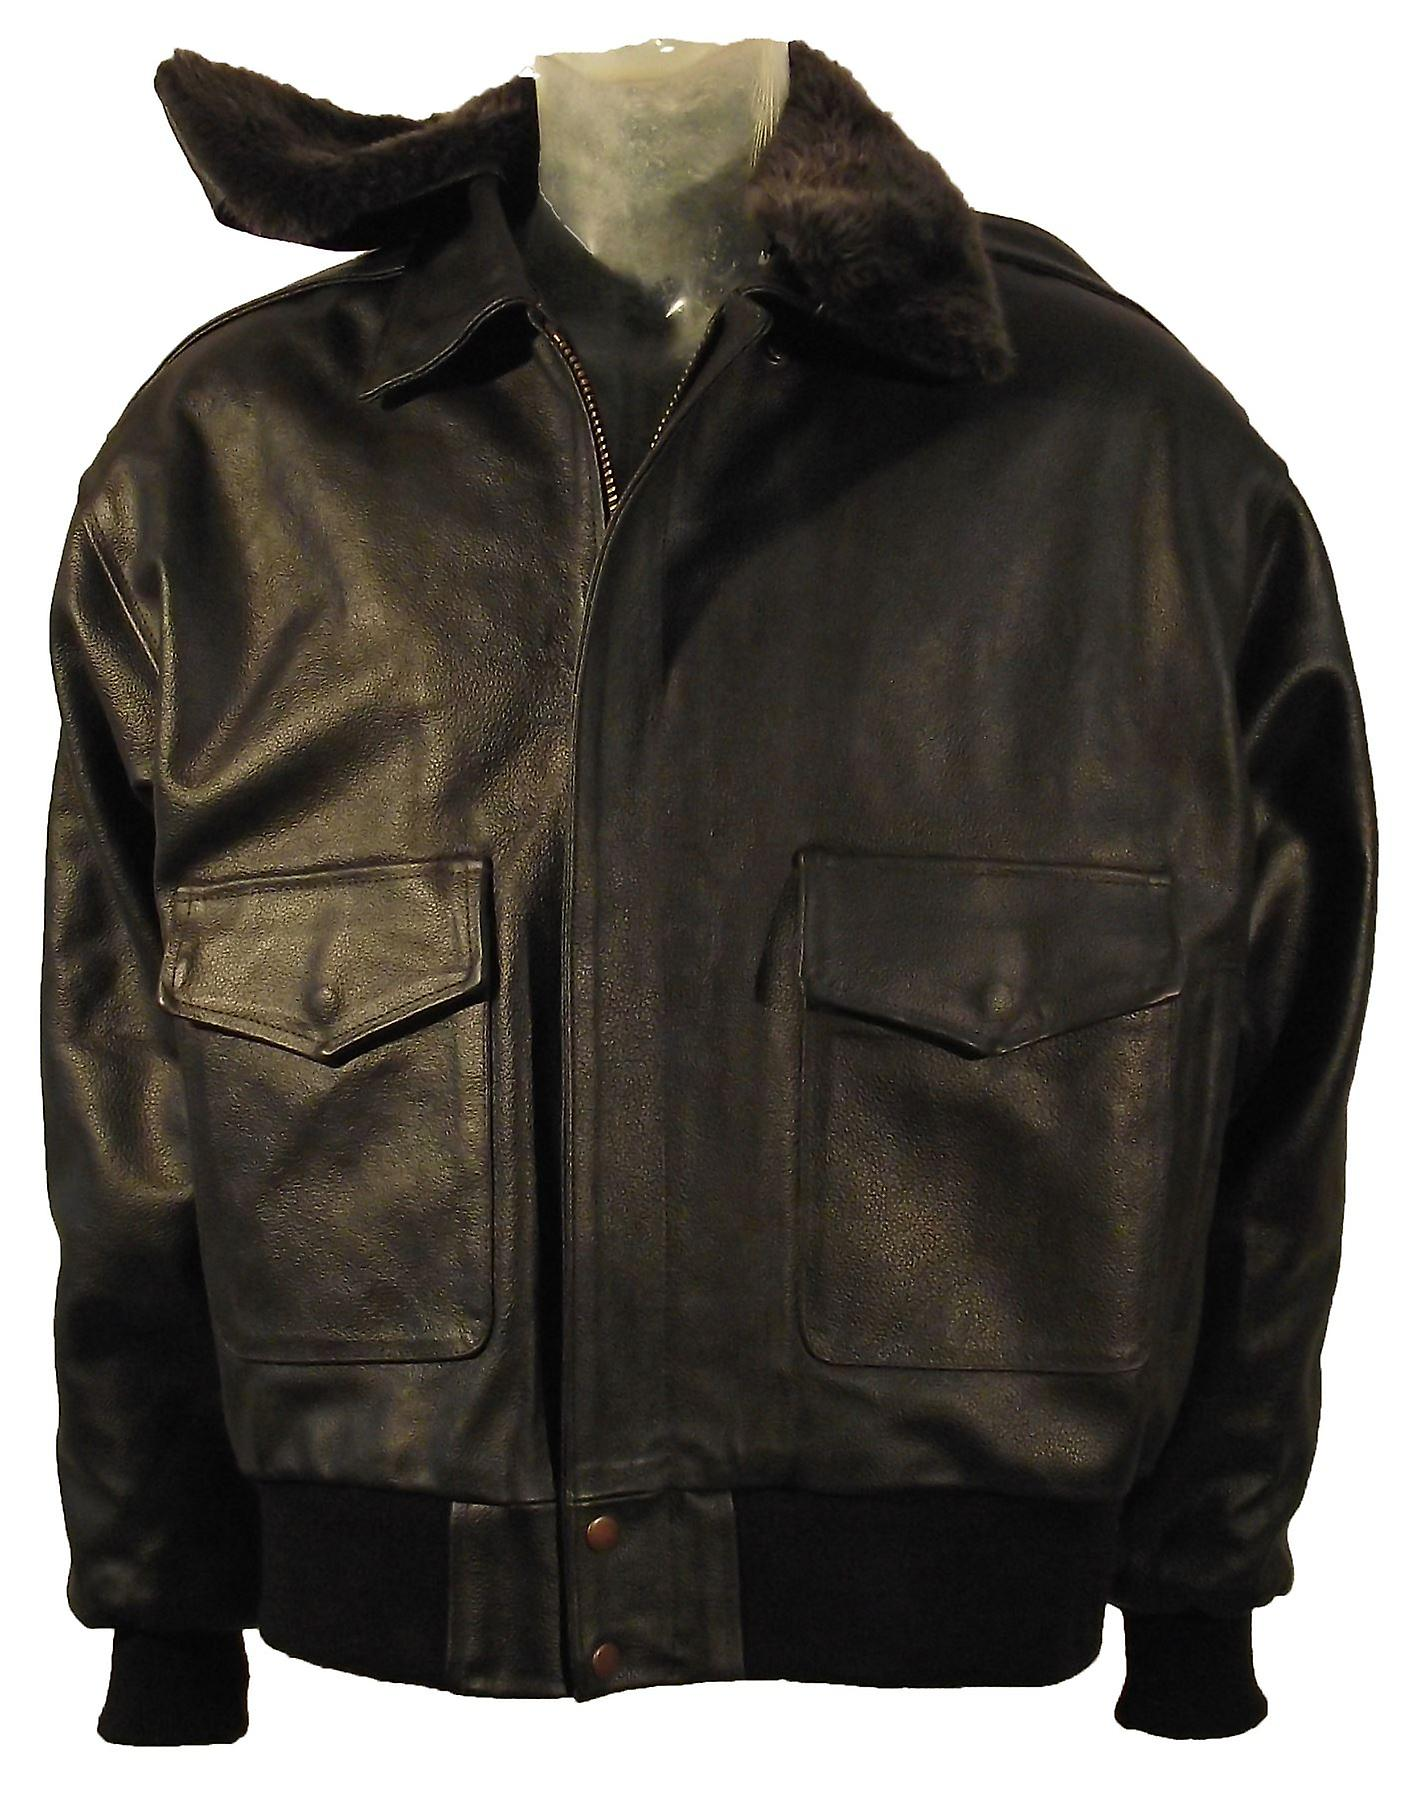 A2 Leather Air-Force Bomber Jacket Fur Collar